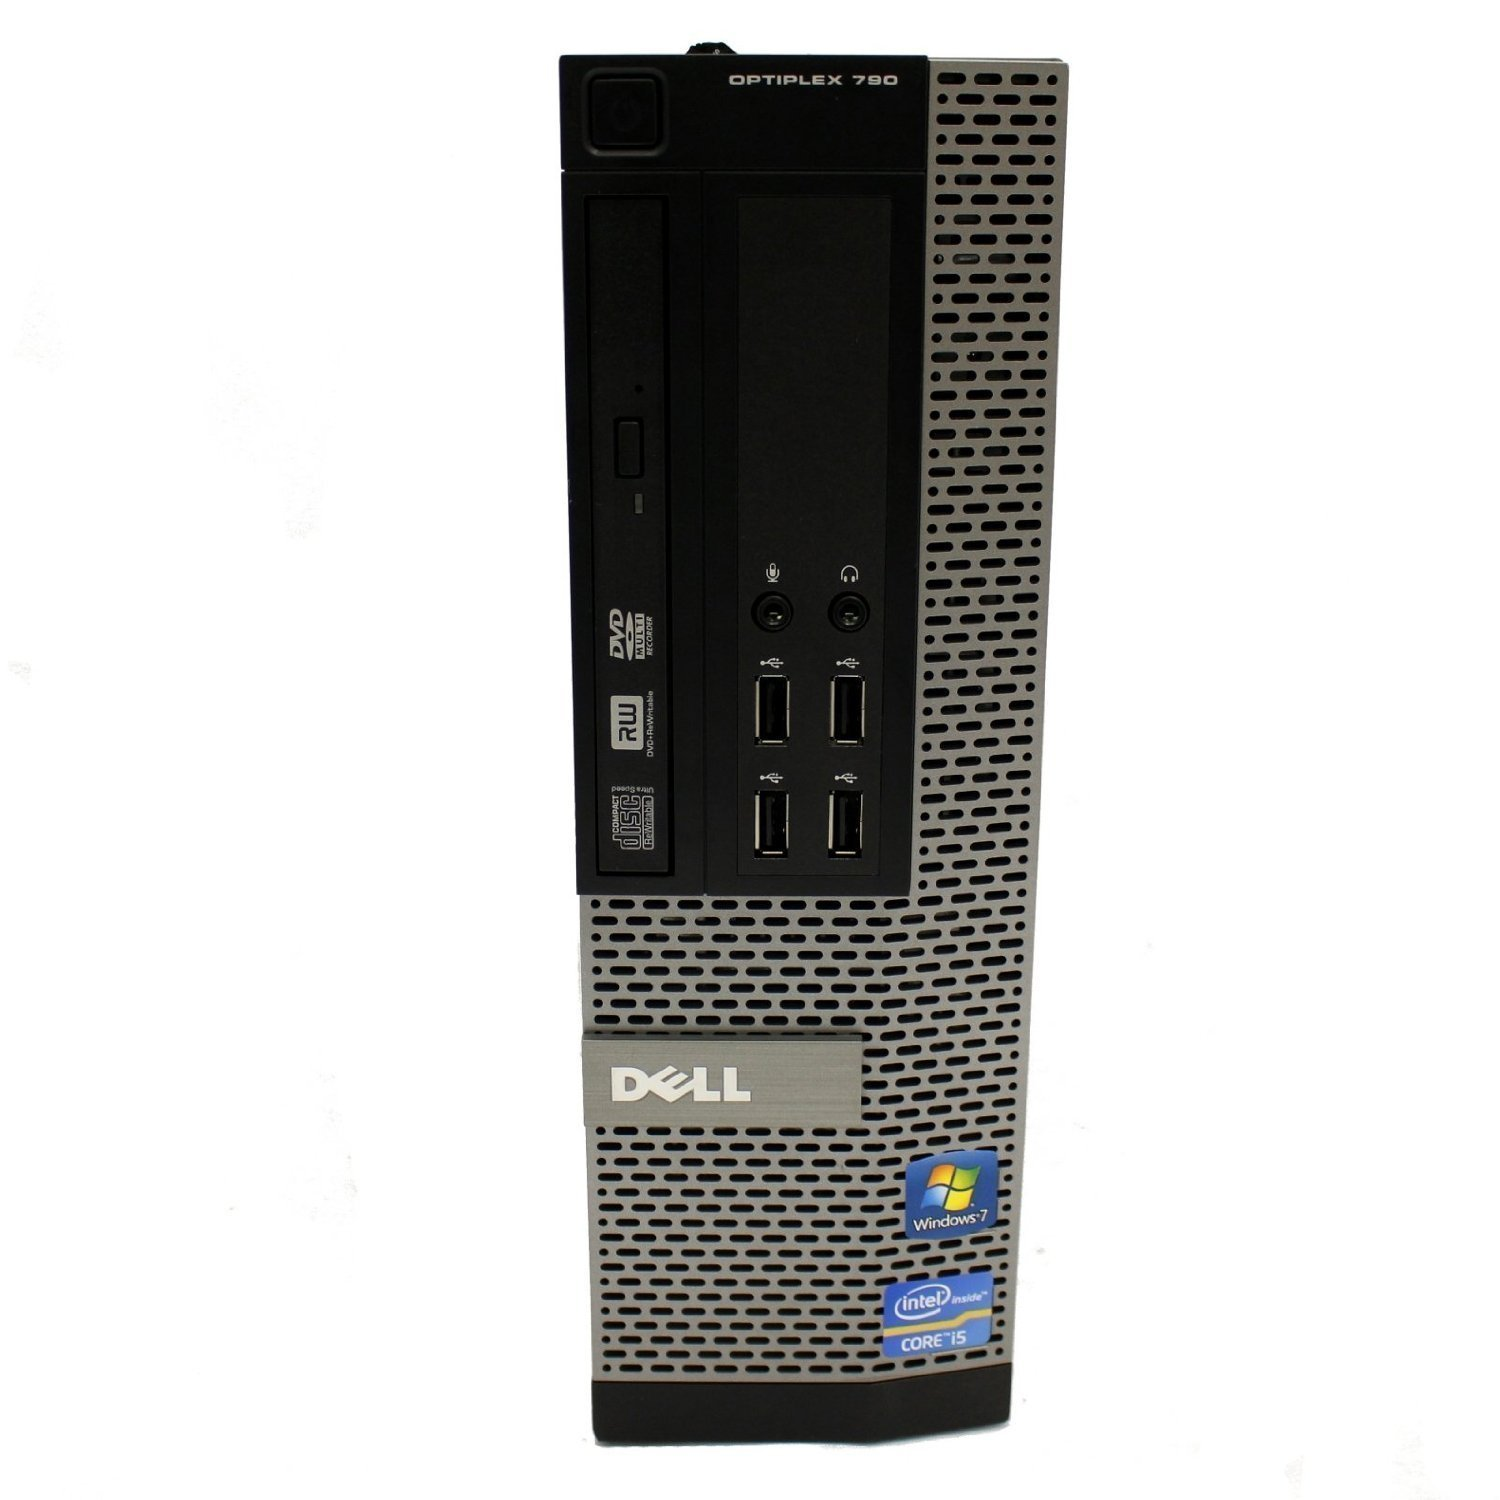 Dell OptiPlex 790 SFF Desktop PC - Intel Core i3-2120 3.3GHz 8GB 250GB DVDRW Windows 10 Pro (Certified Refurbished)